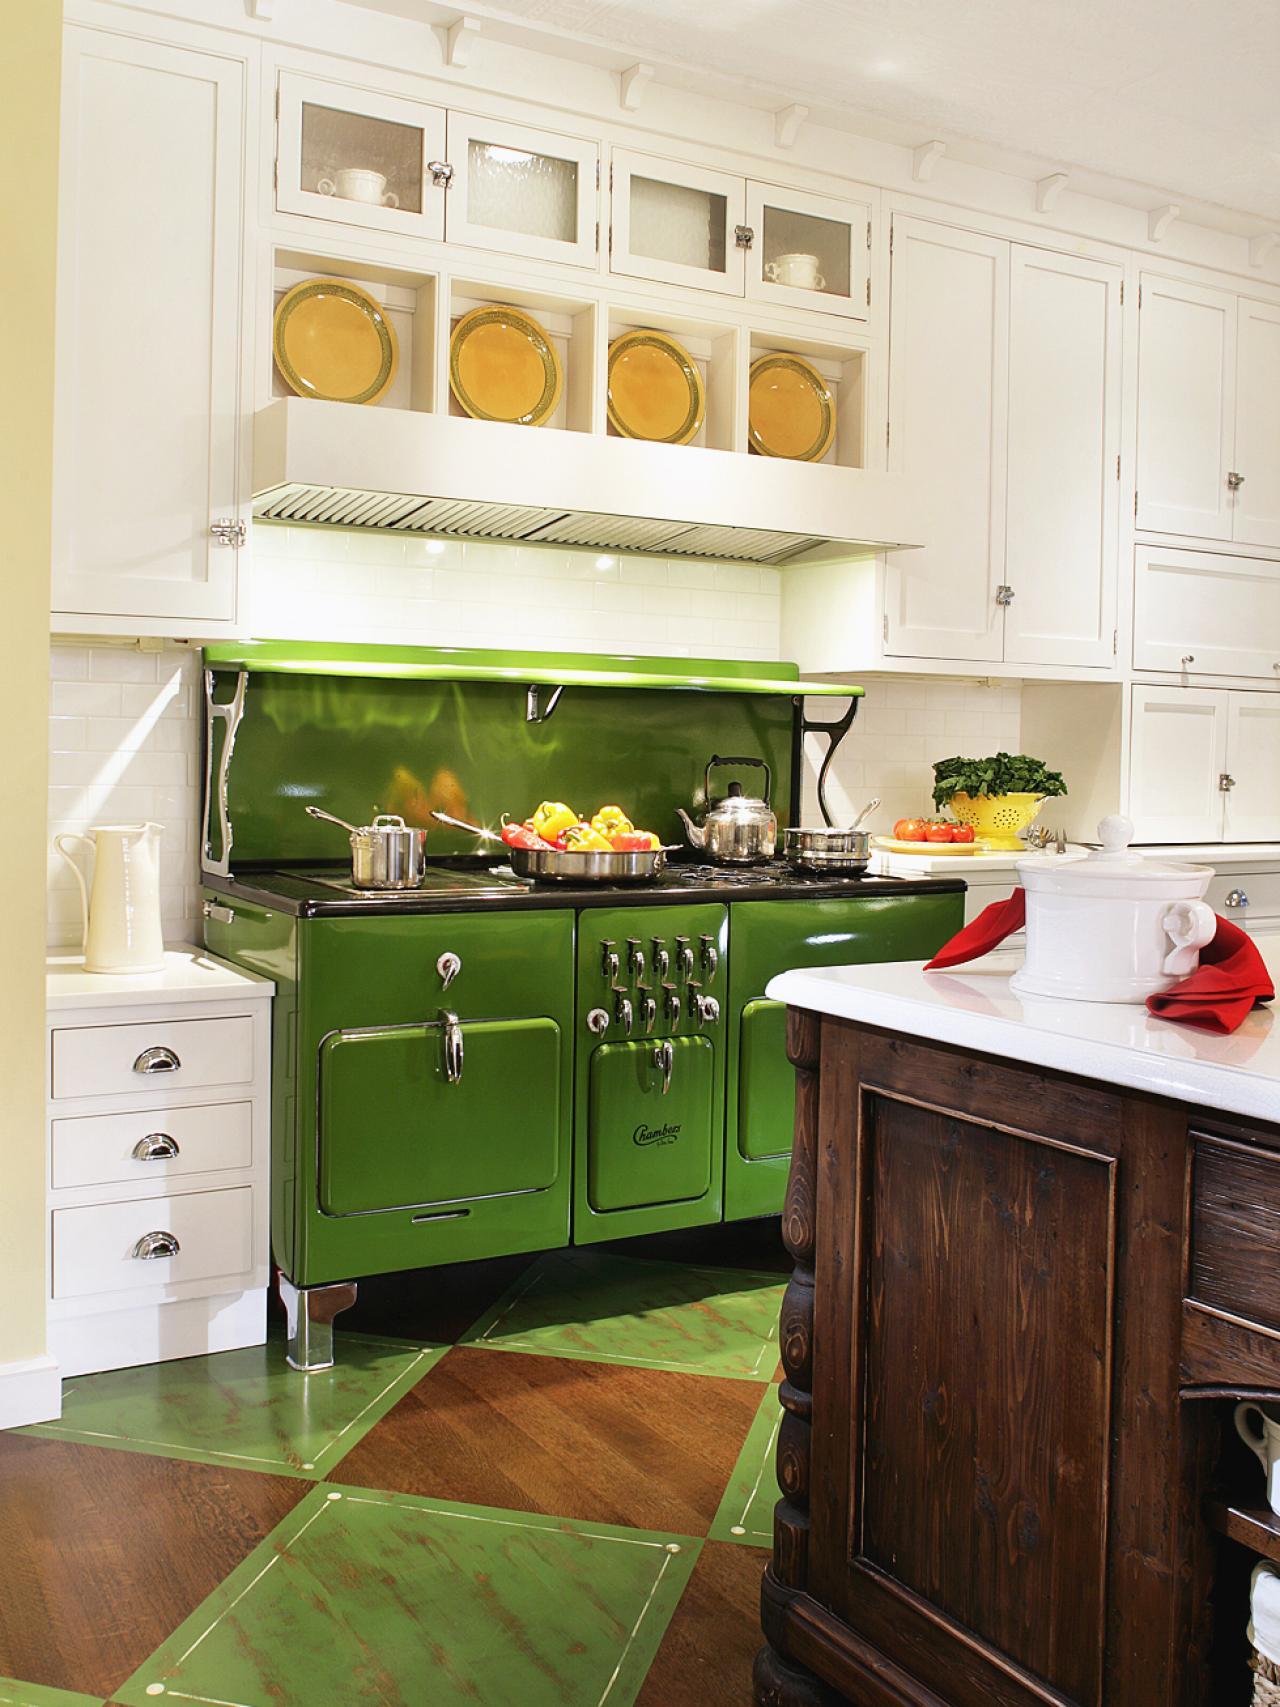 kitchen with vintage green stove to ensure the vintage apple green